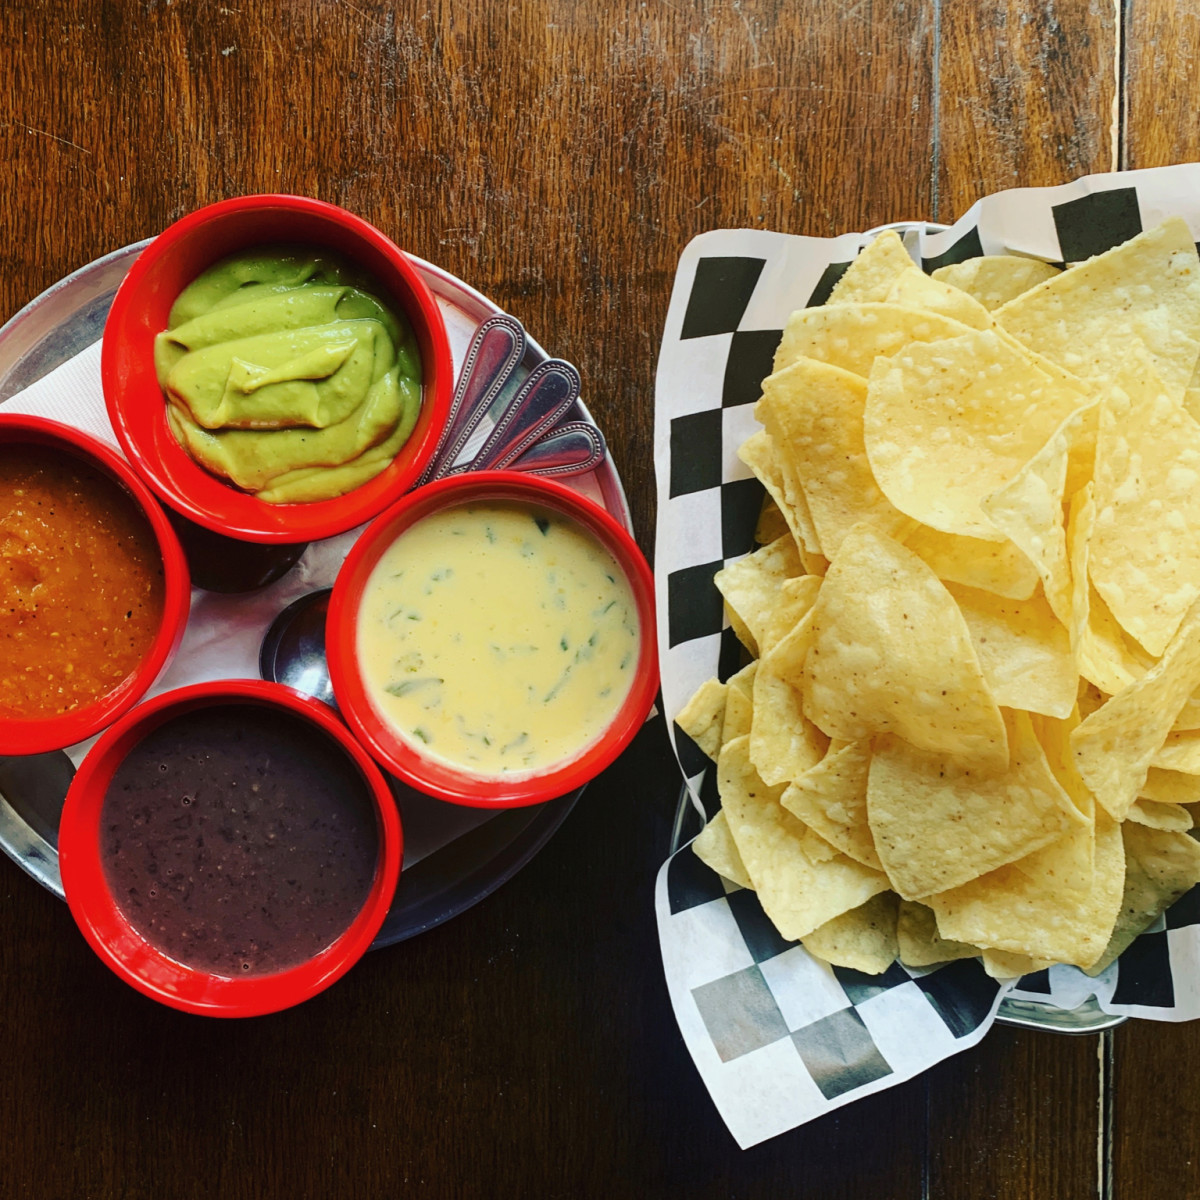 Rudyard's chips and dips